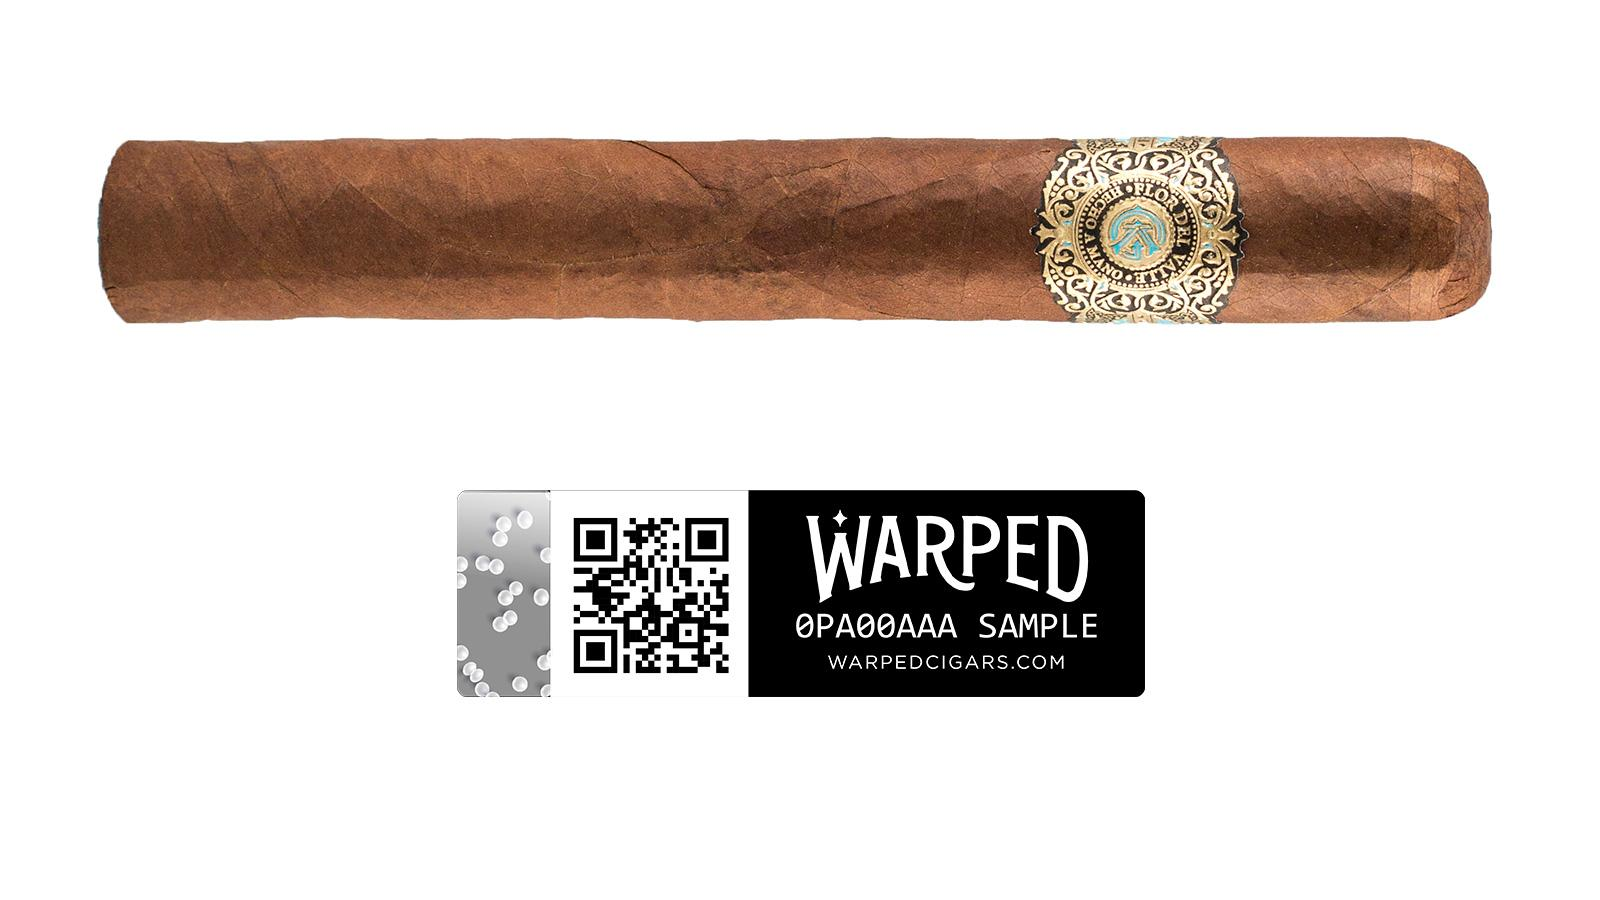 An anti-counterfeit label will now come affixed to the cellophane sleeve of limited-edition Warped cigars like the Sky Flower (shown). Note the effervescent bubble pattern on the security seal.